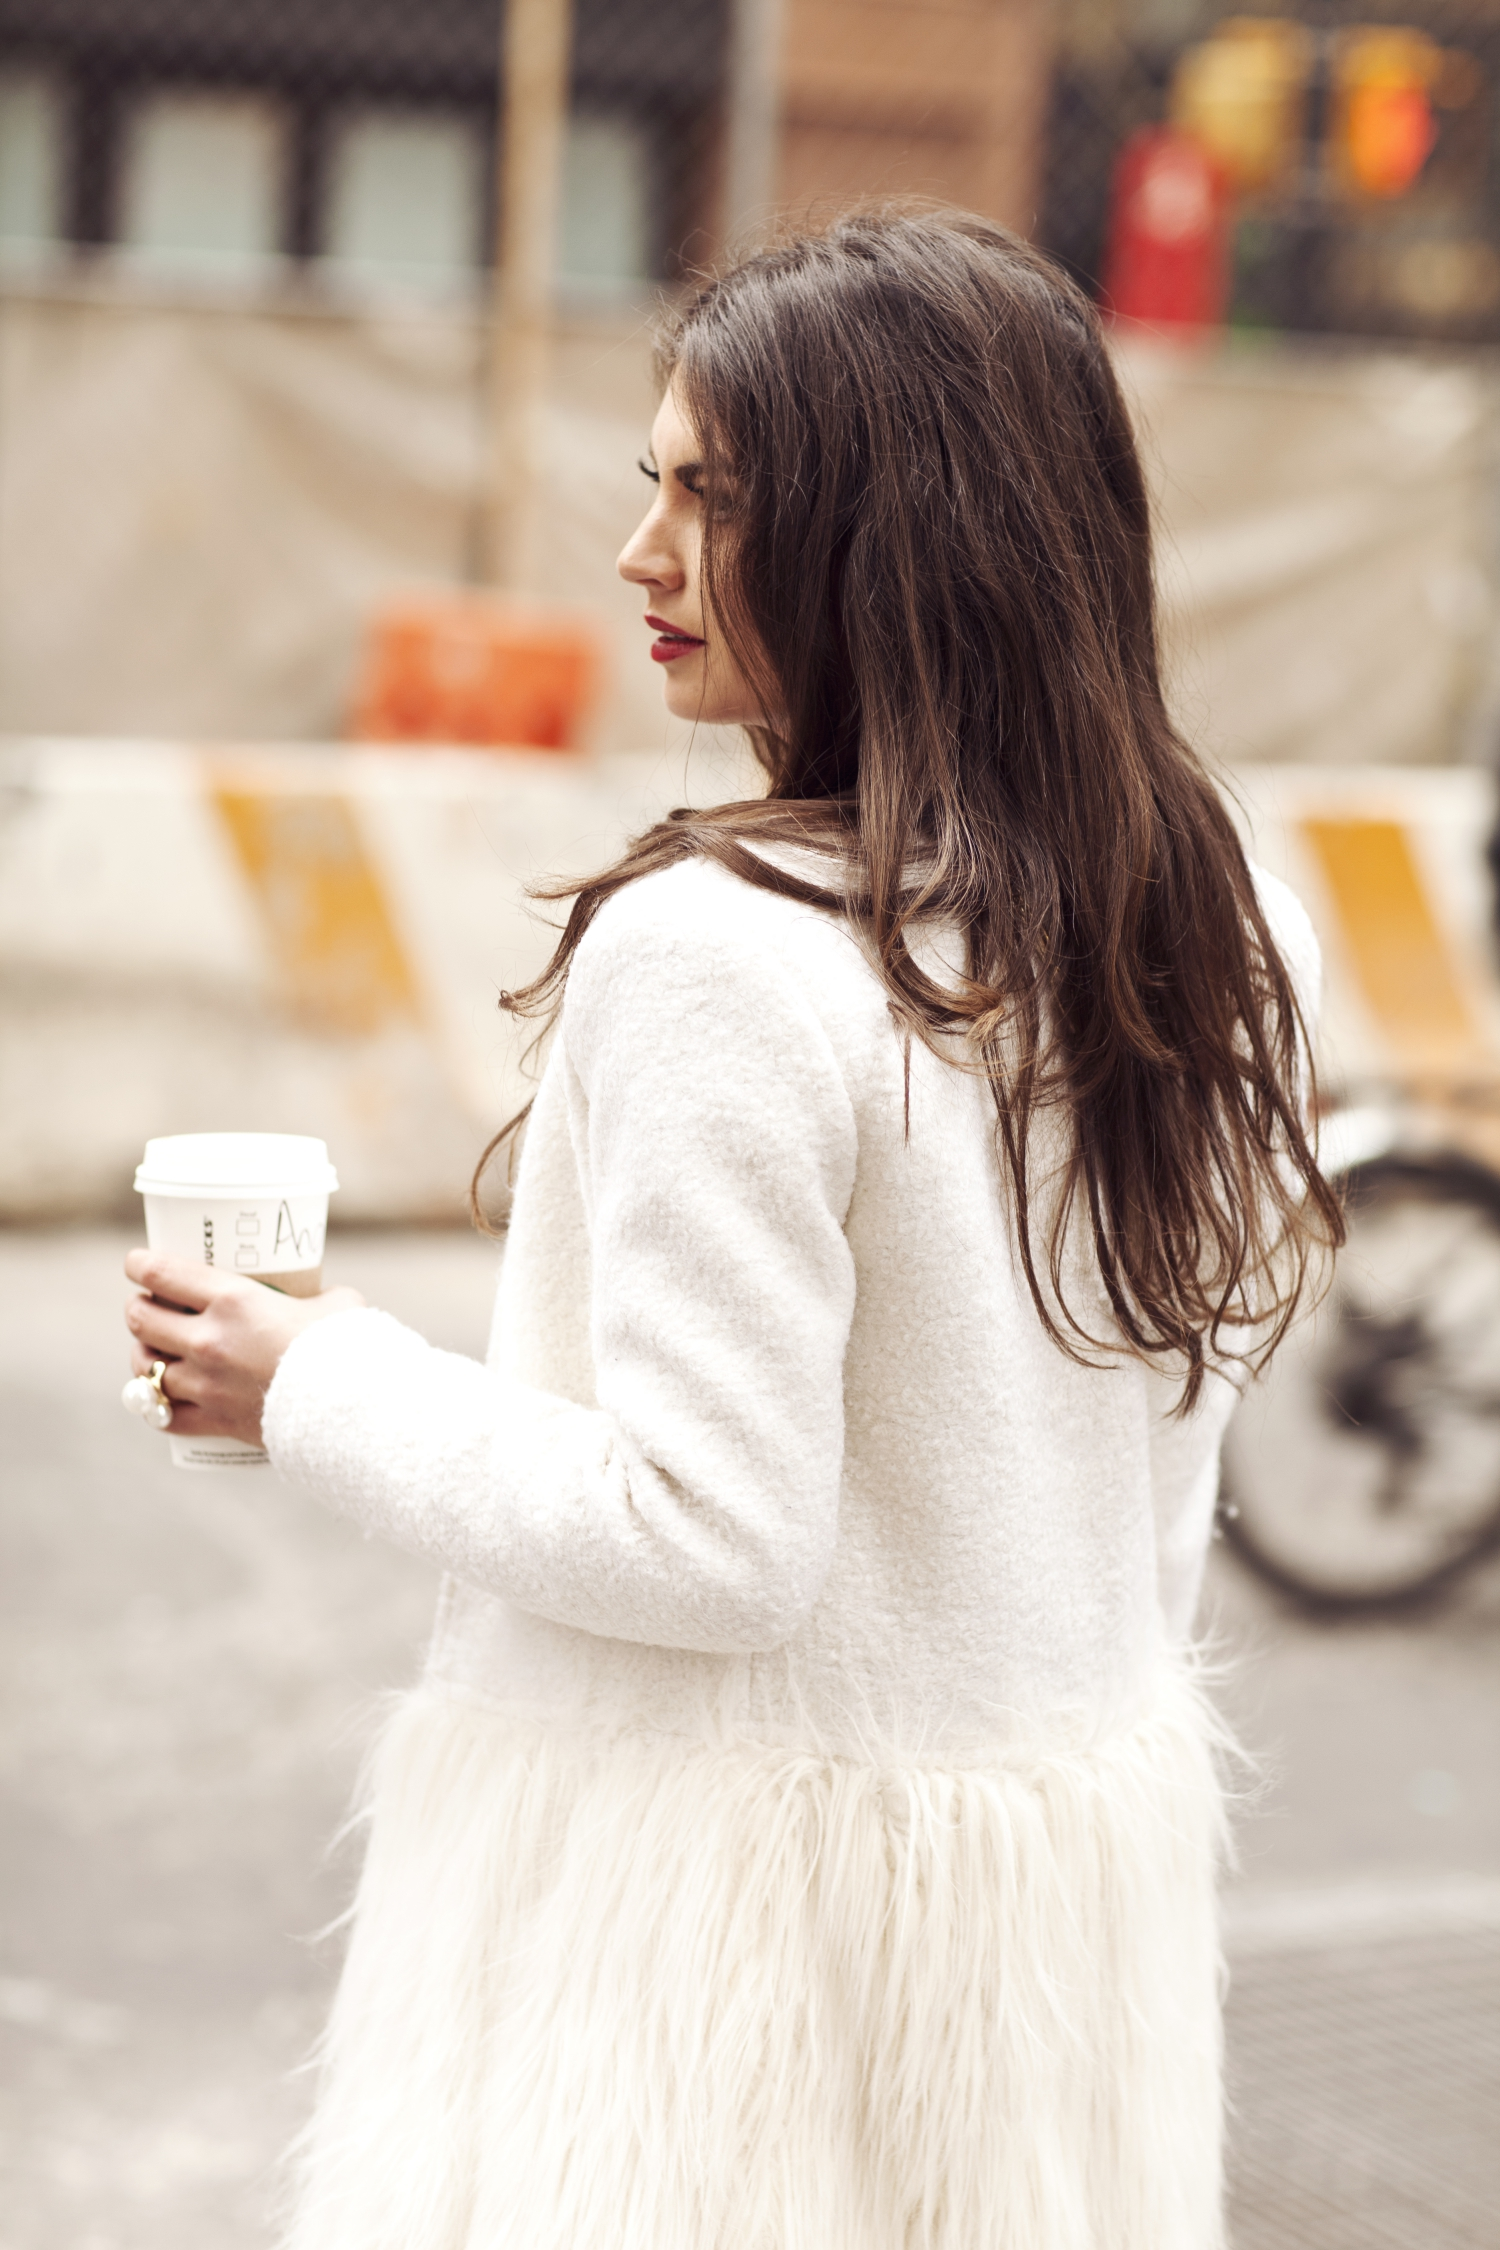 new-york-fashion-week-winter-outfit-fashionhippieloves